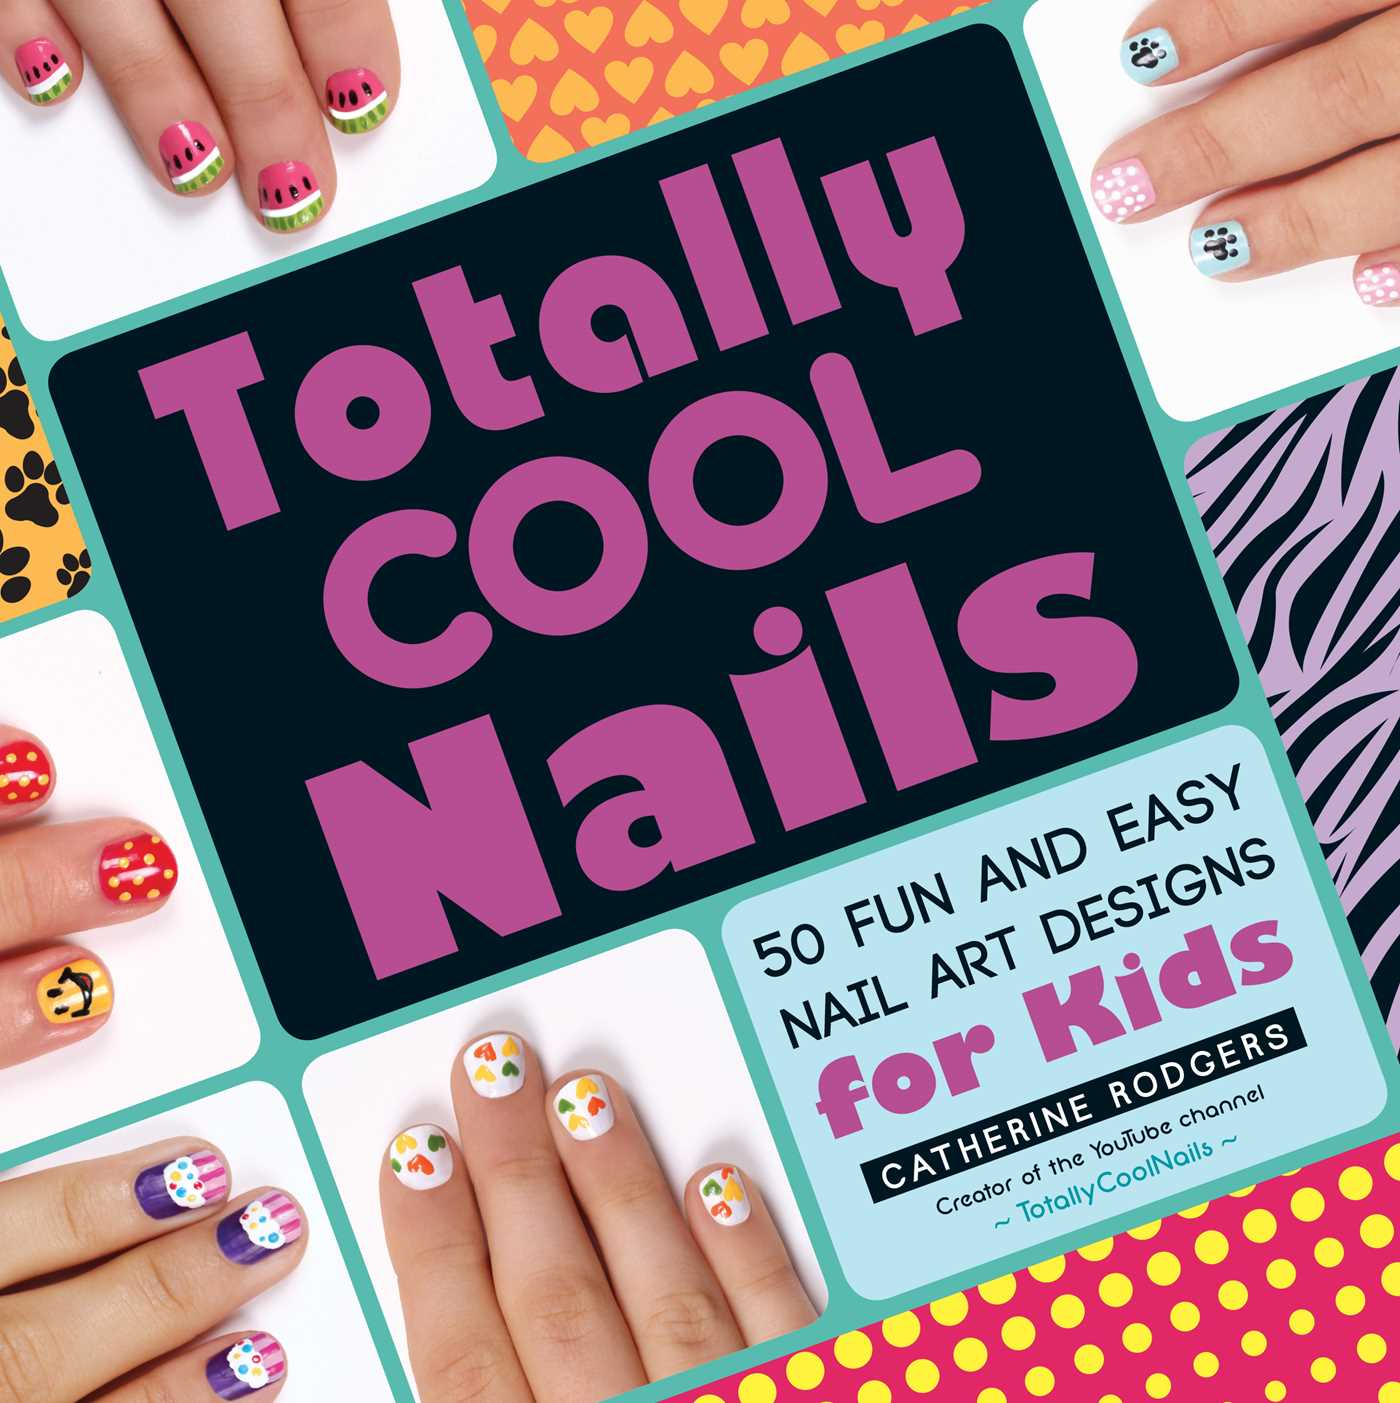 Totally cool nails 50 fun and easy nail art designs for kids totally cool nails 50 fun and easy nail art designs for kids walmart prinsesfo Images